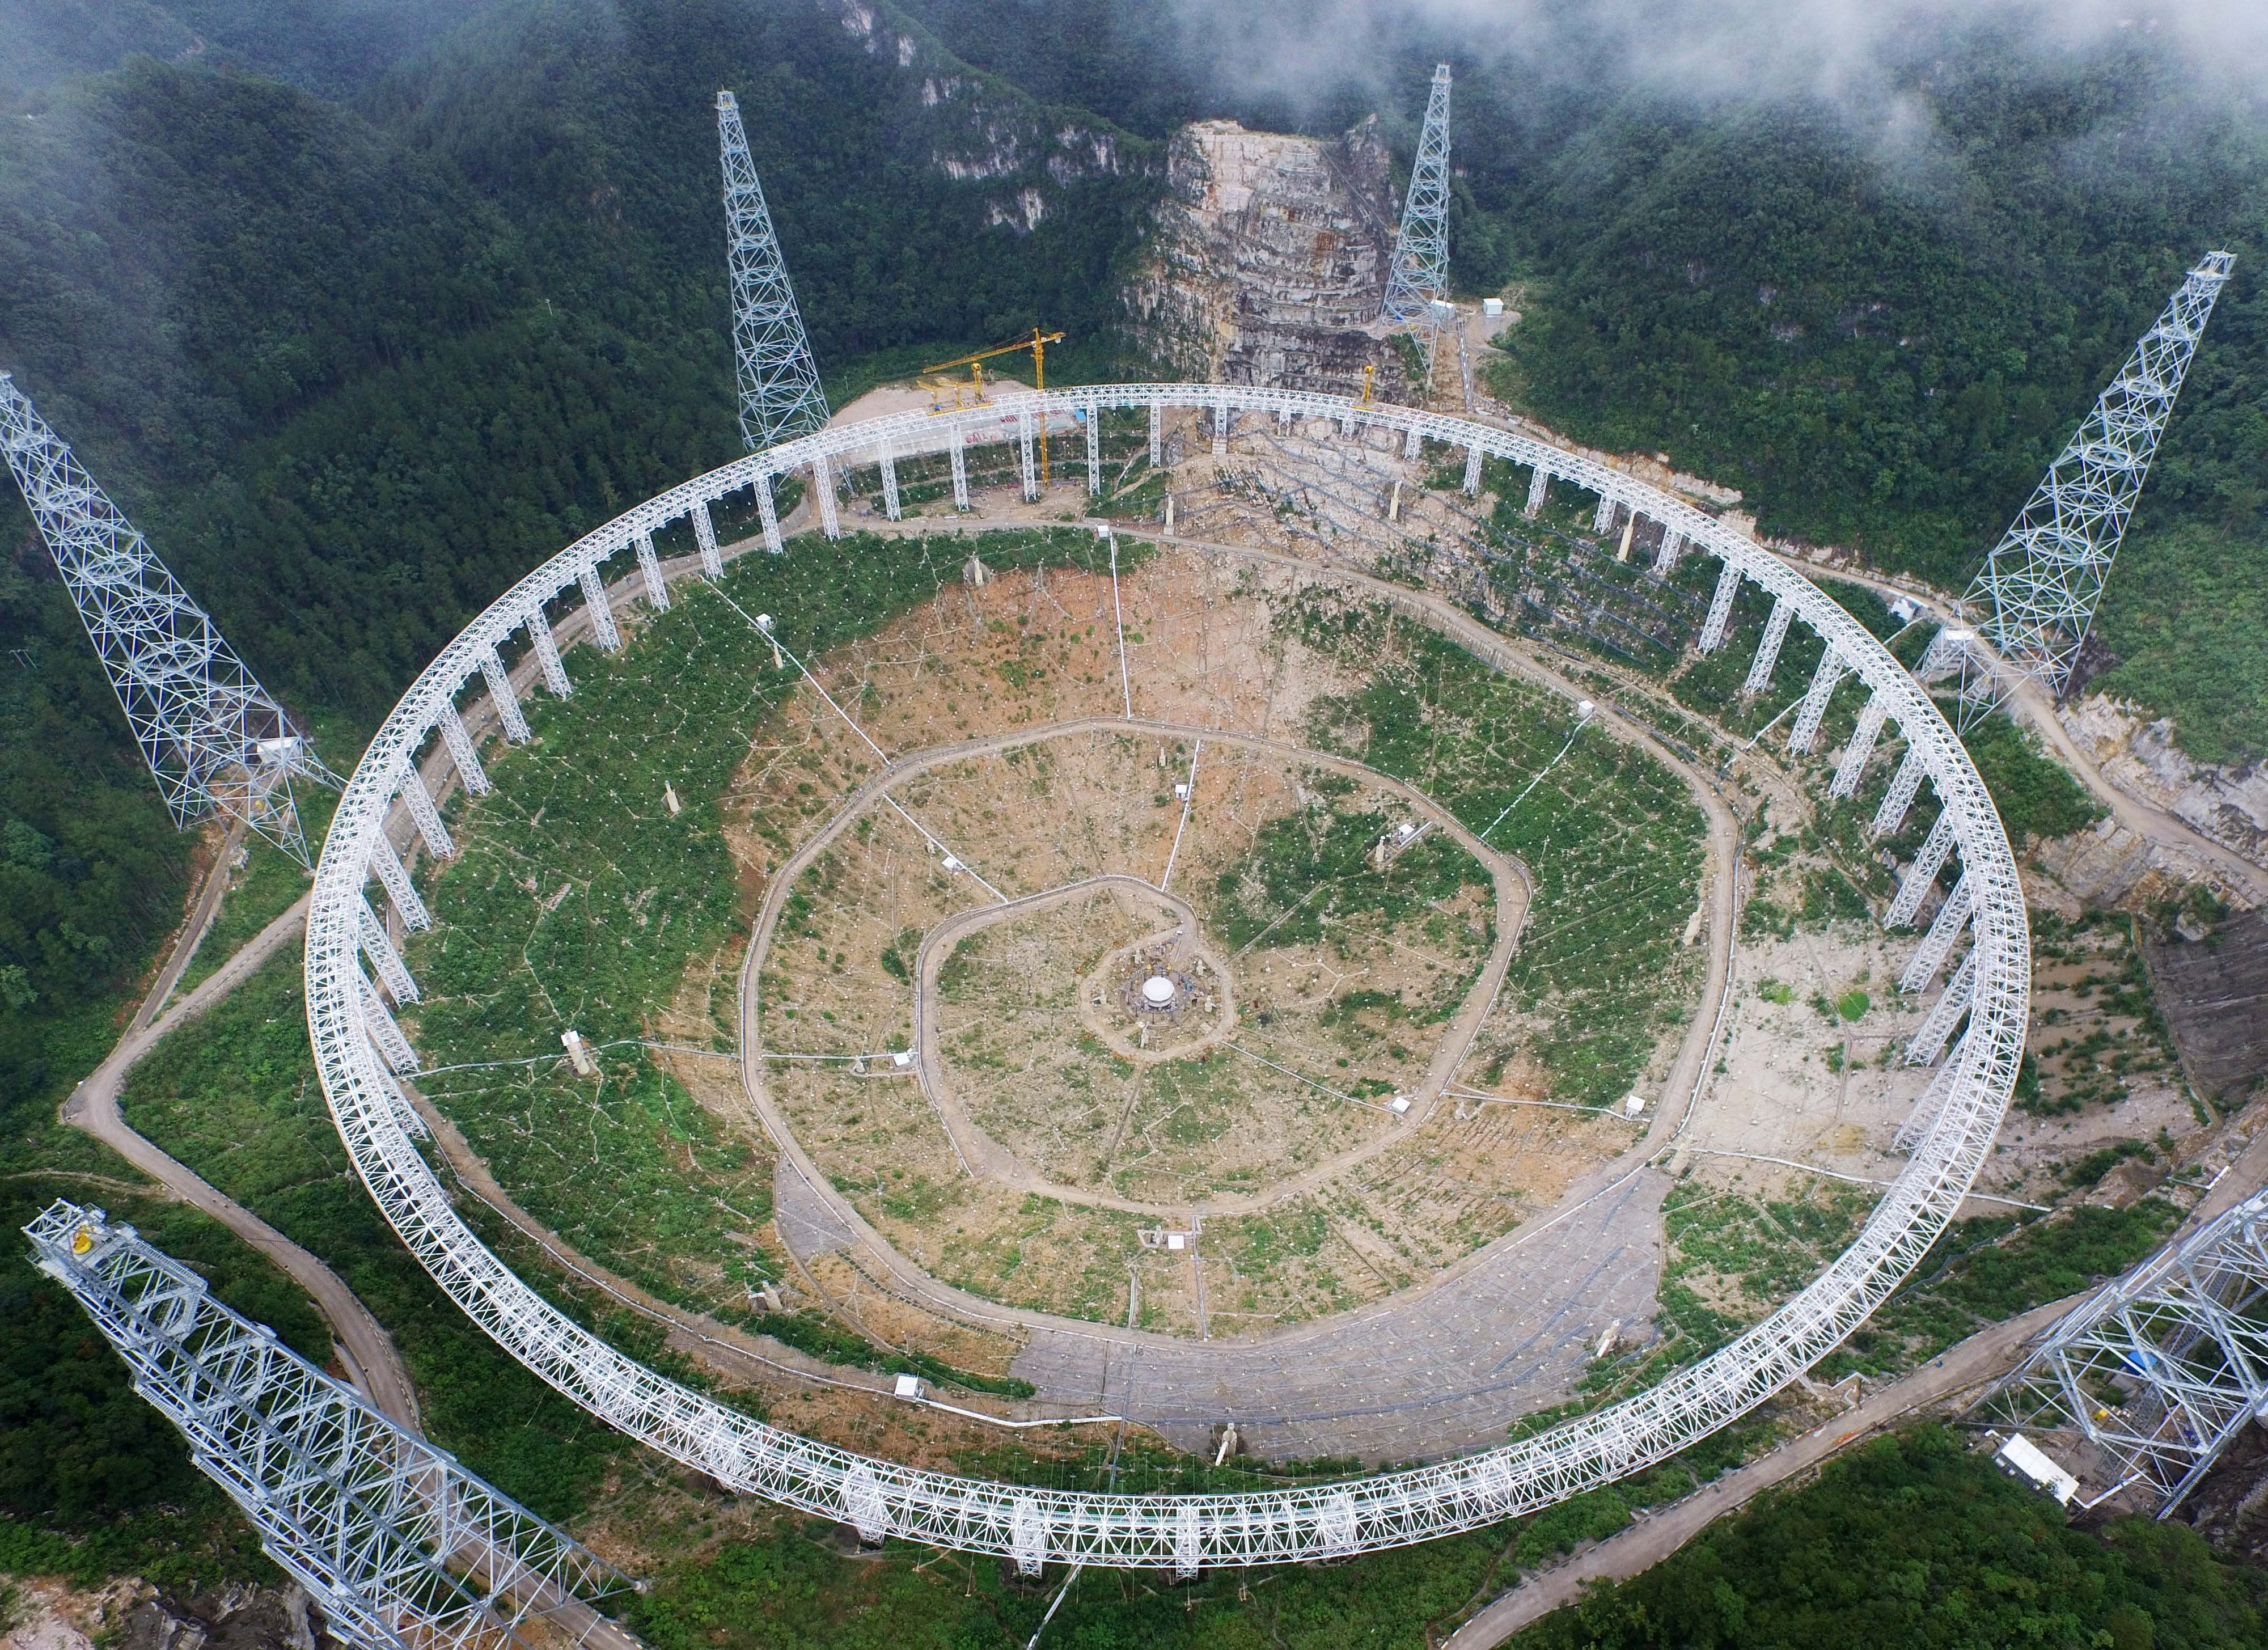 QIANNAN BUYEI AND MIAO AUTONOMOUS PREFECTURE, CHINA - JULY 28:  (CHINA OUT) Aerial view of the Five hundred meter Aperture Spherical Telescope (FAST) built in mountains on July 28, 2015 in Pingtang County, Qiannan Buyei and Miao Autonomous Prefecture, Guizhou province of China. The FAST would be used mainly for capturing radio signals in the universe. With a diameter of 500 meters it would be the world's largest radio telescope when completed in September, 2016.  (Photo by ChinaFotoPress/ChinaFotoPress via Getty Images)